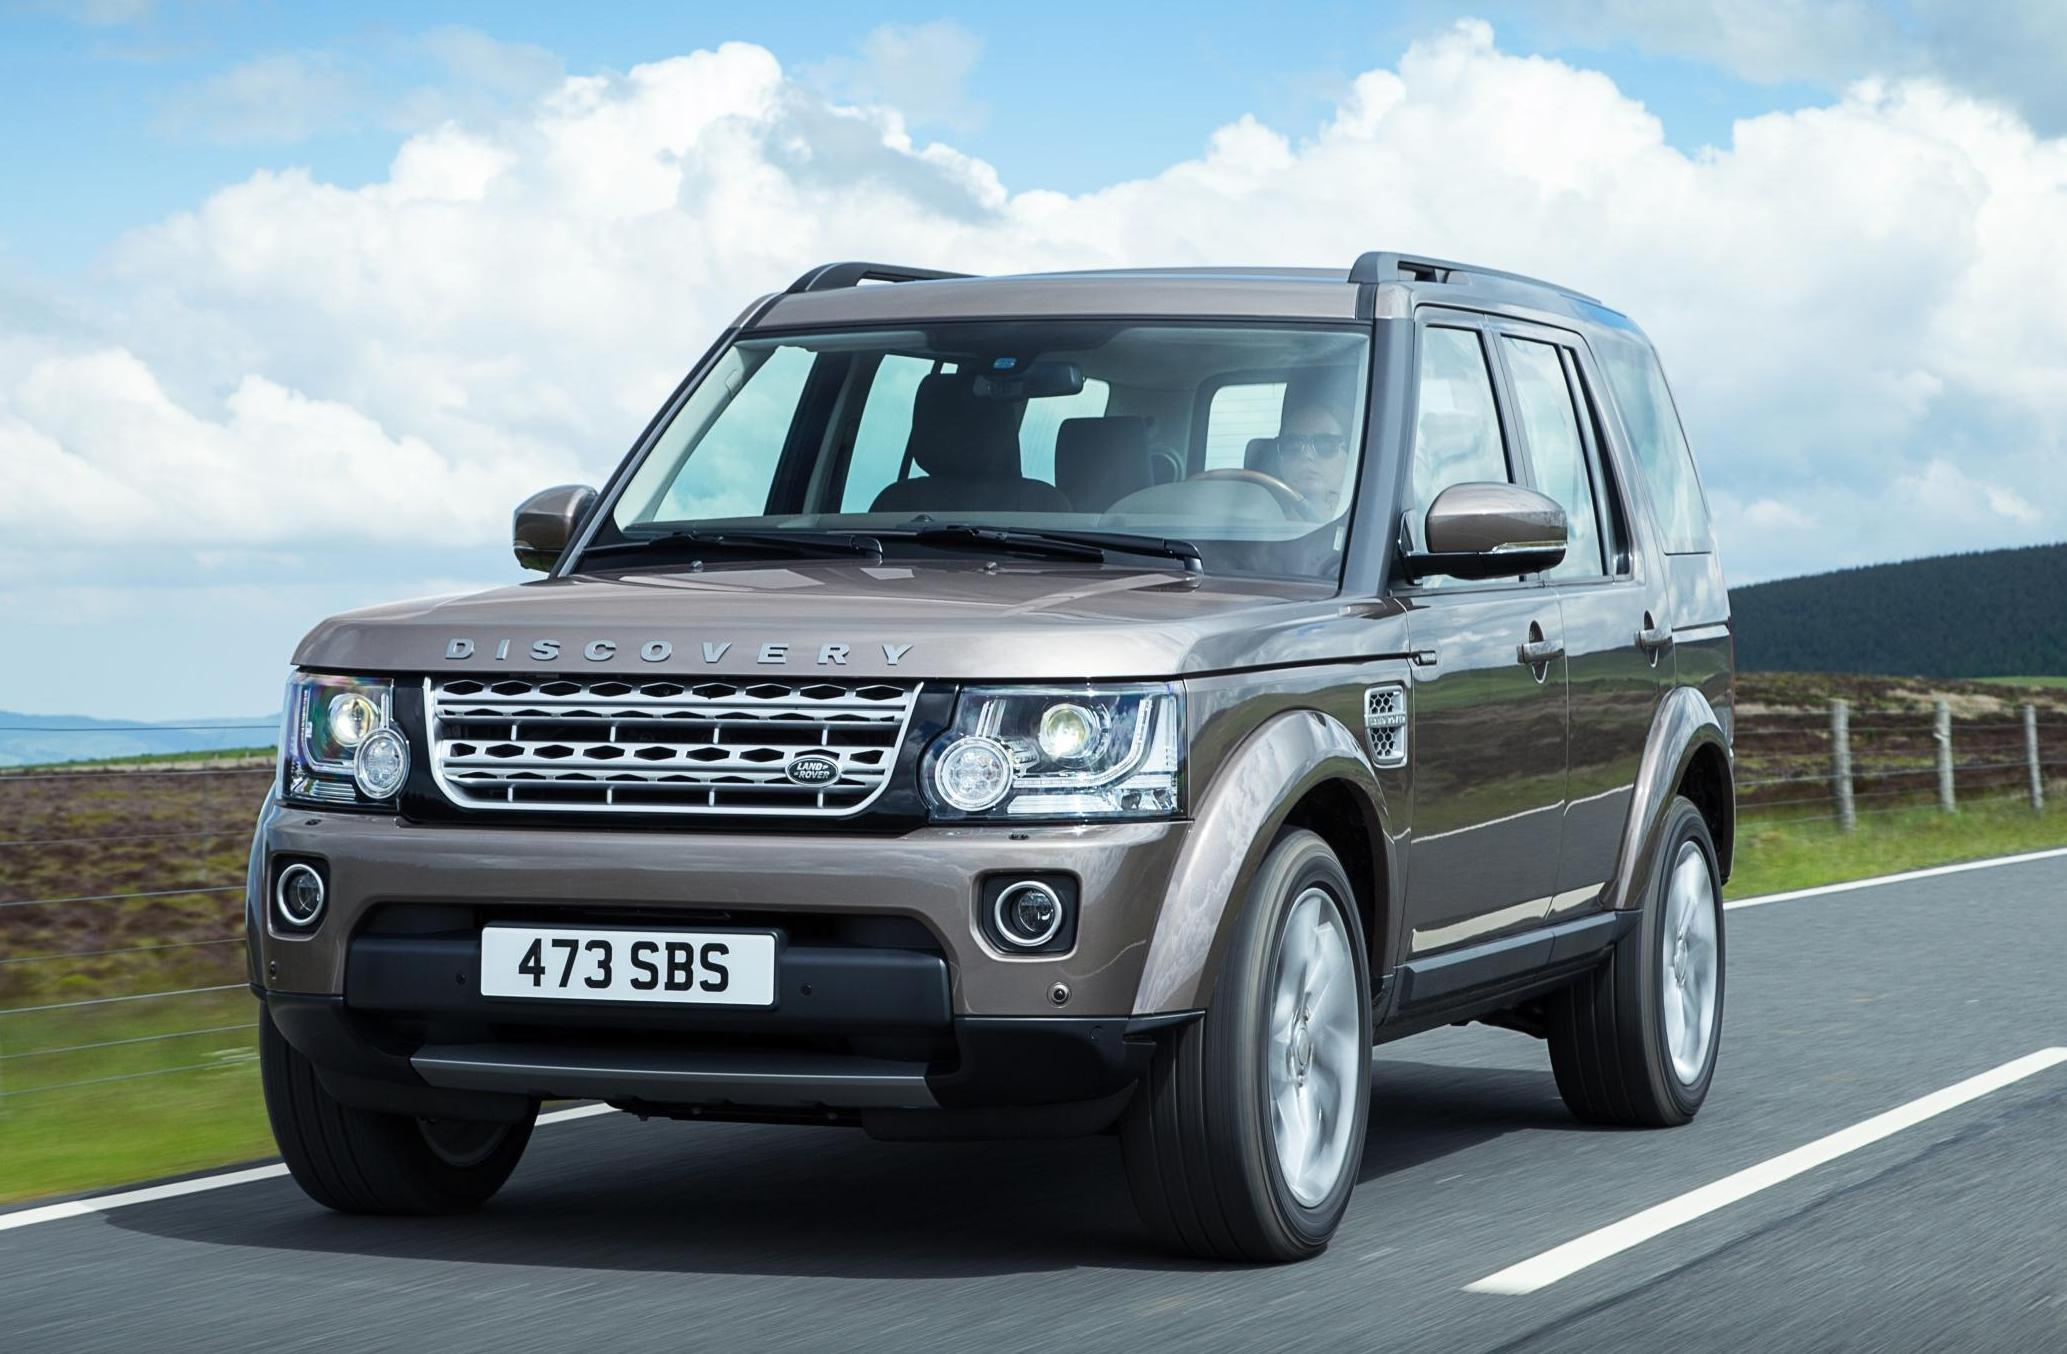 https://www.indiacarnews.com/wp-content/uploads/2014/06/2015-Land-Rover-Discovery.jpg